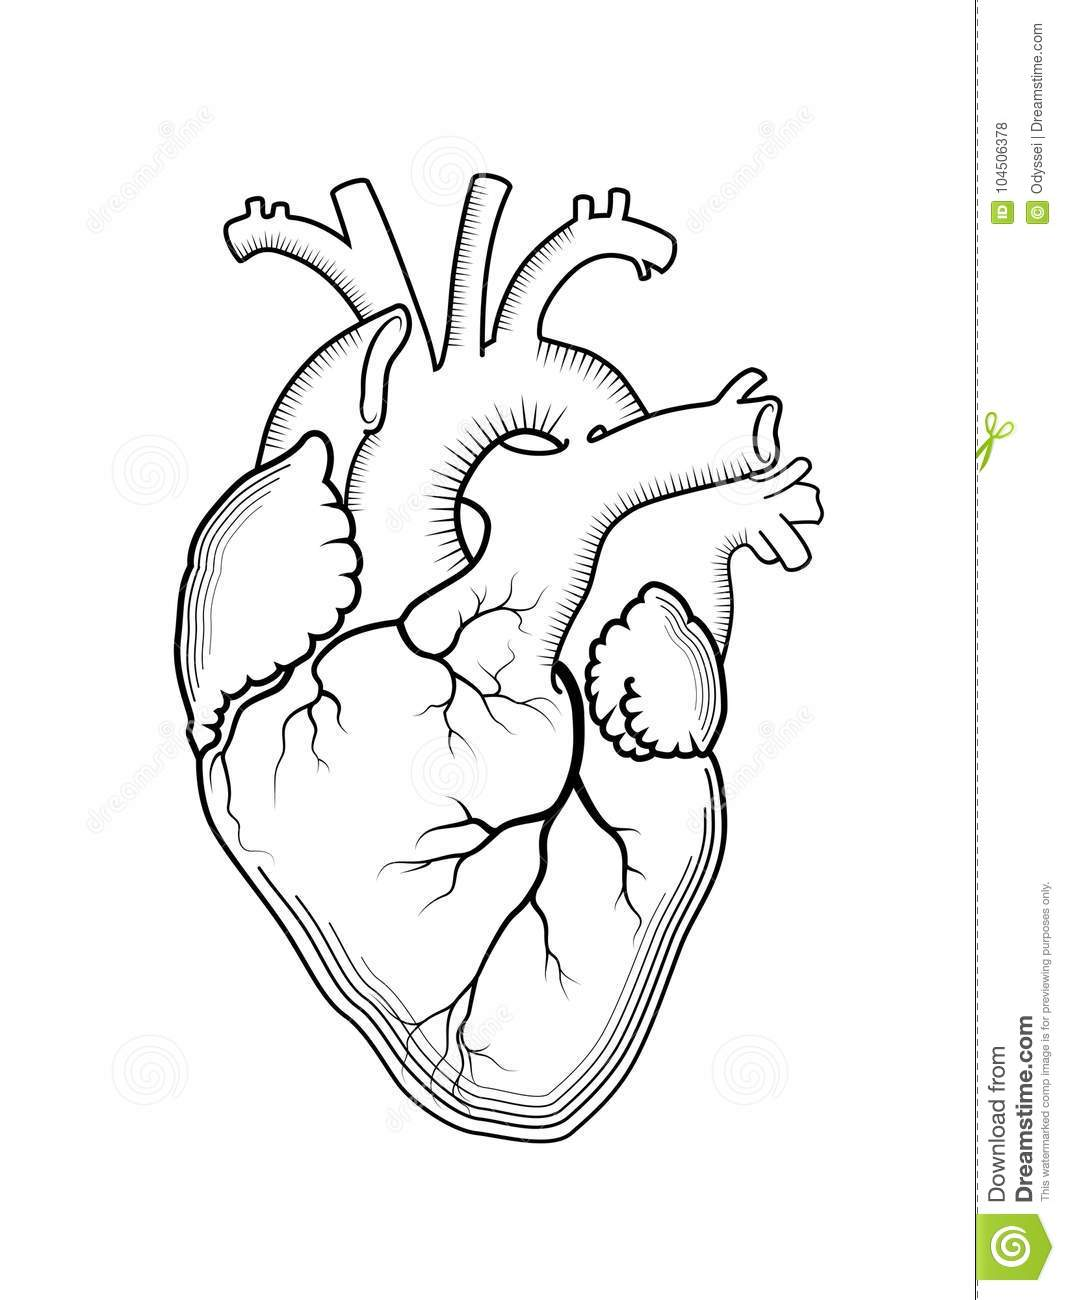 Heart The Internal Human Organ Anatomical Structure